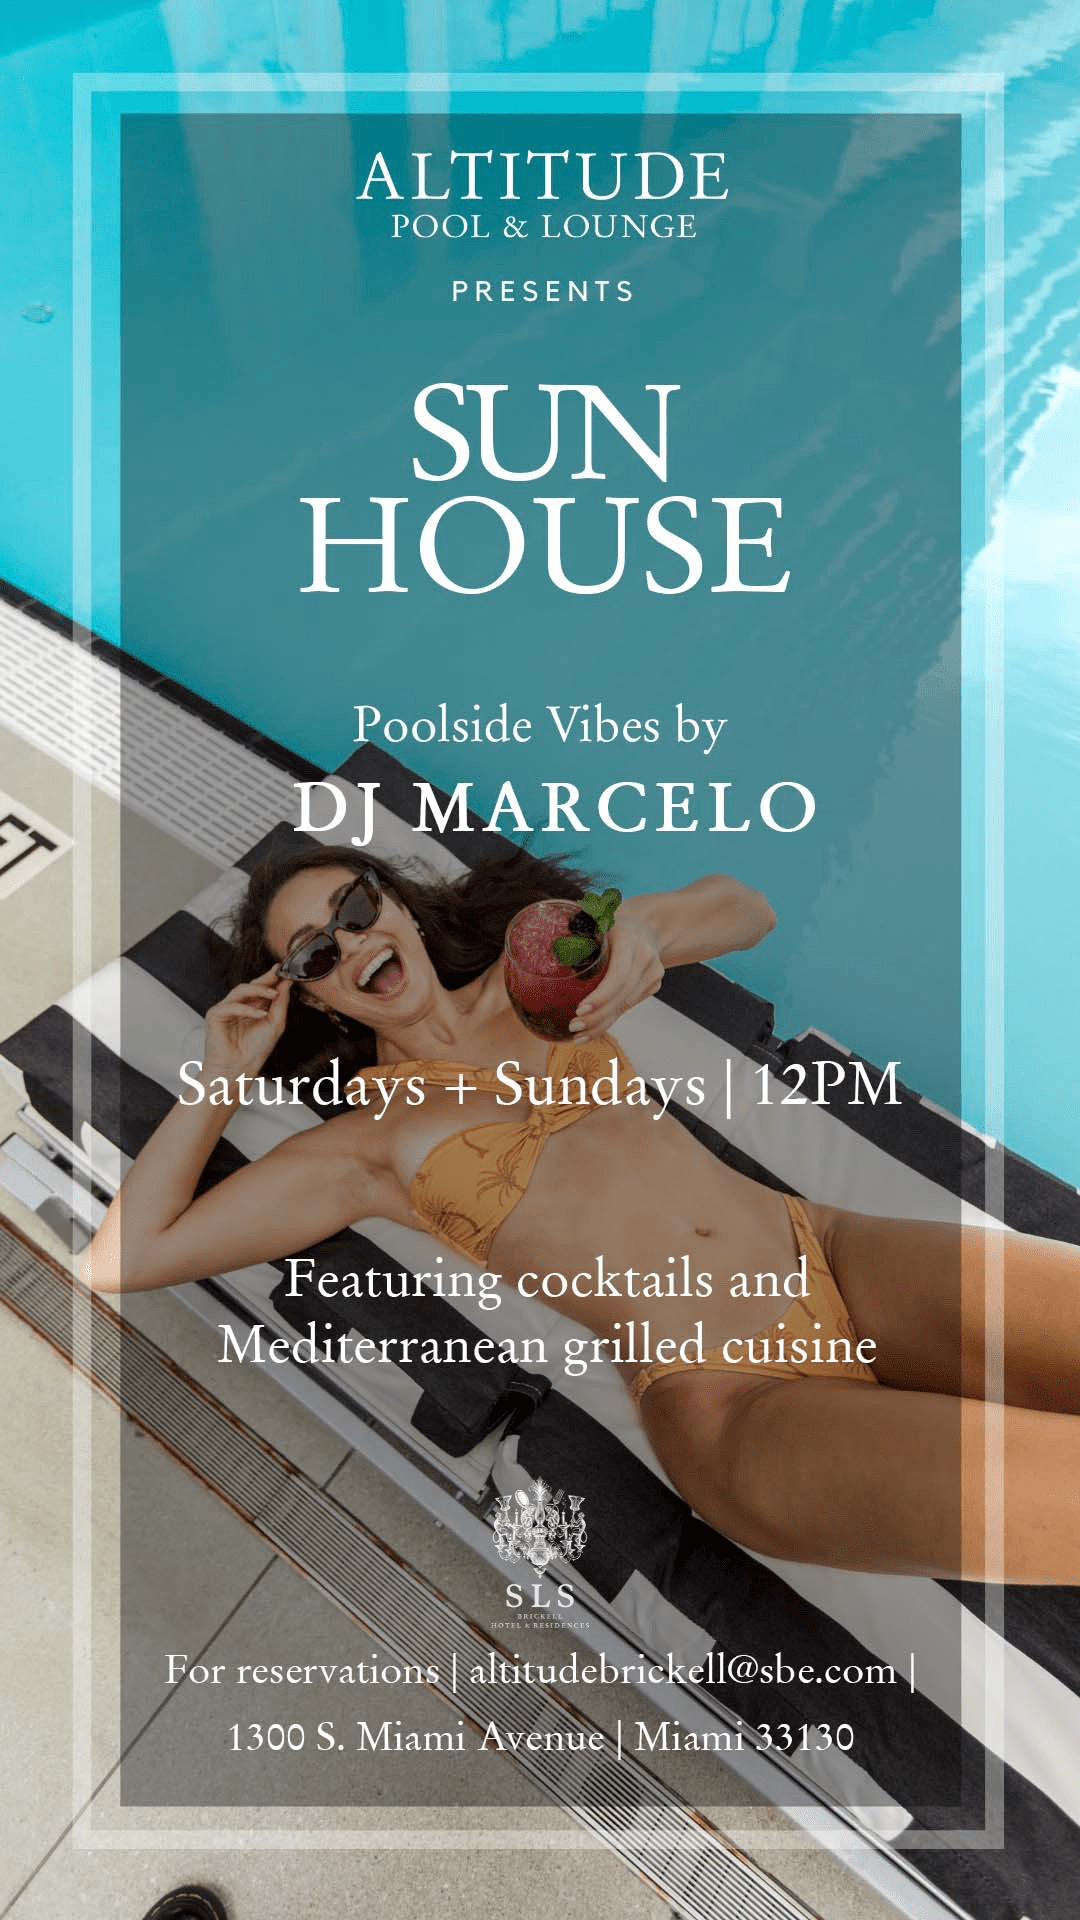 Sun House at The SLS Brickell Altitude Pool & Lounge